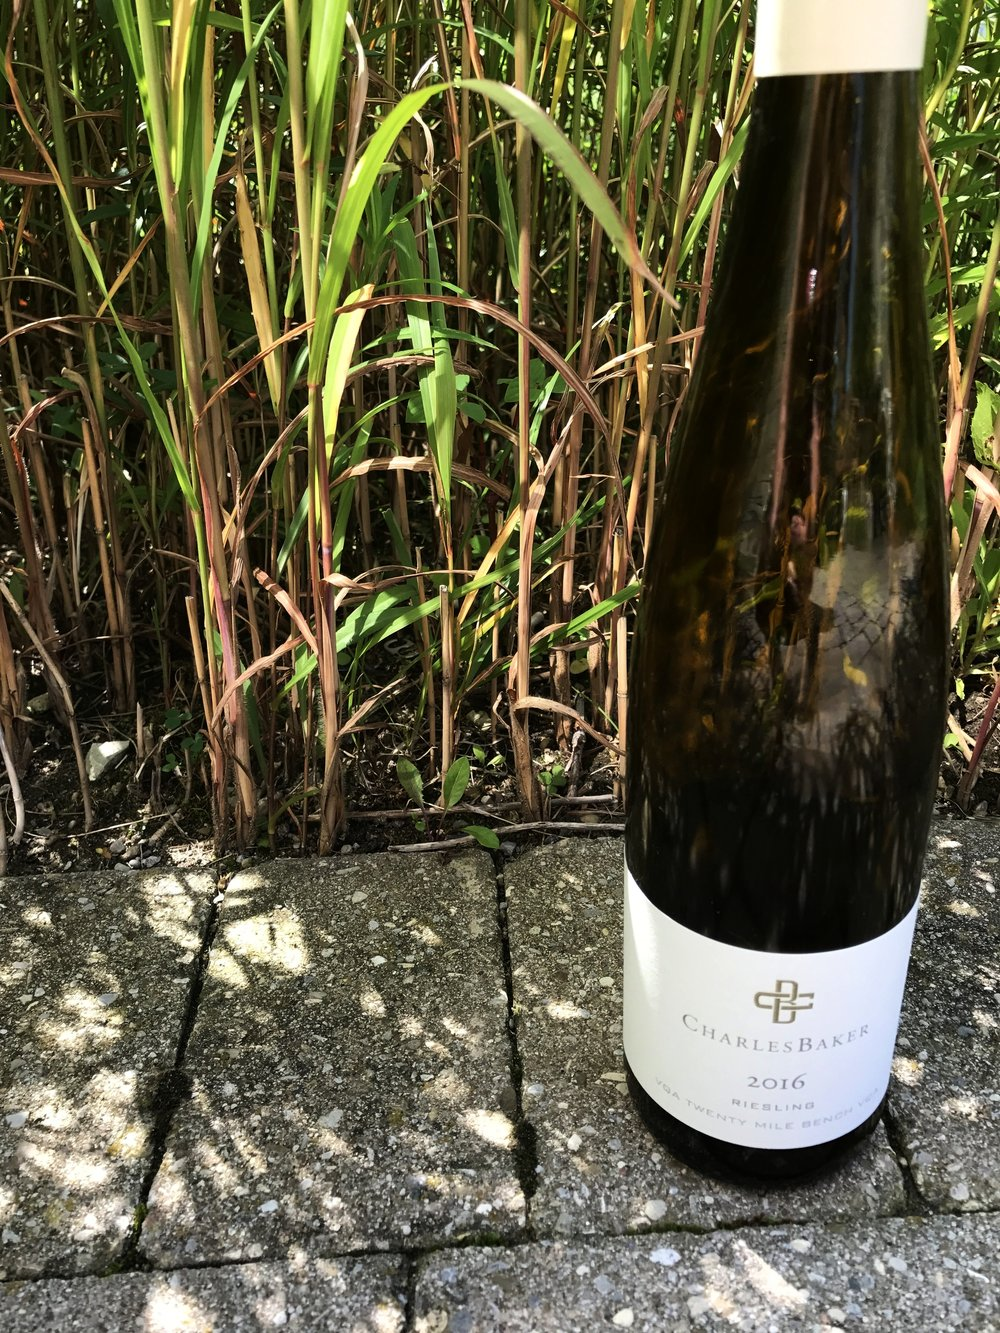 Charles Baker Ivan Vineyard Riesling 2016 Review